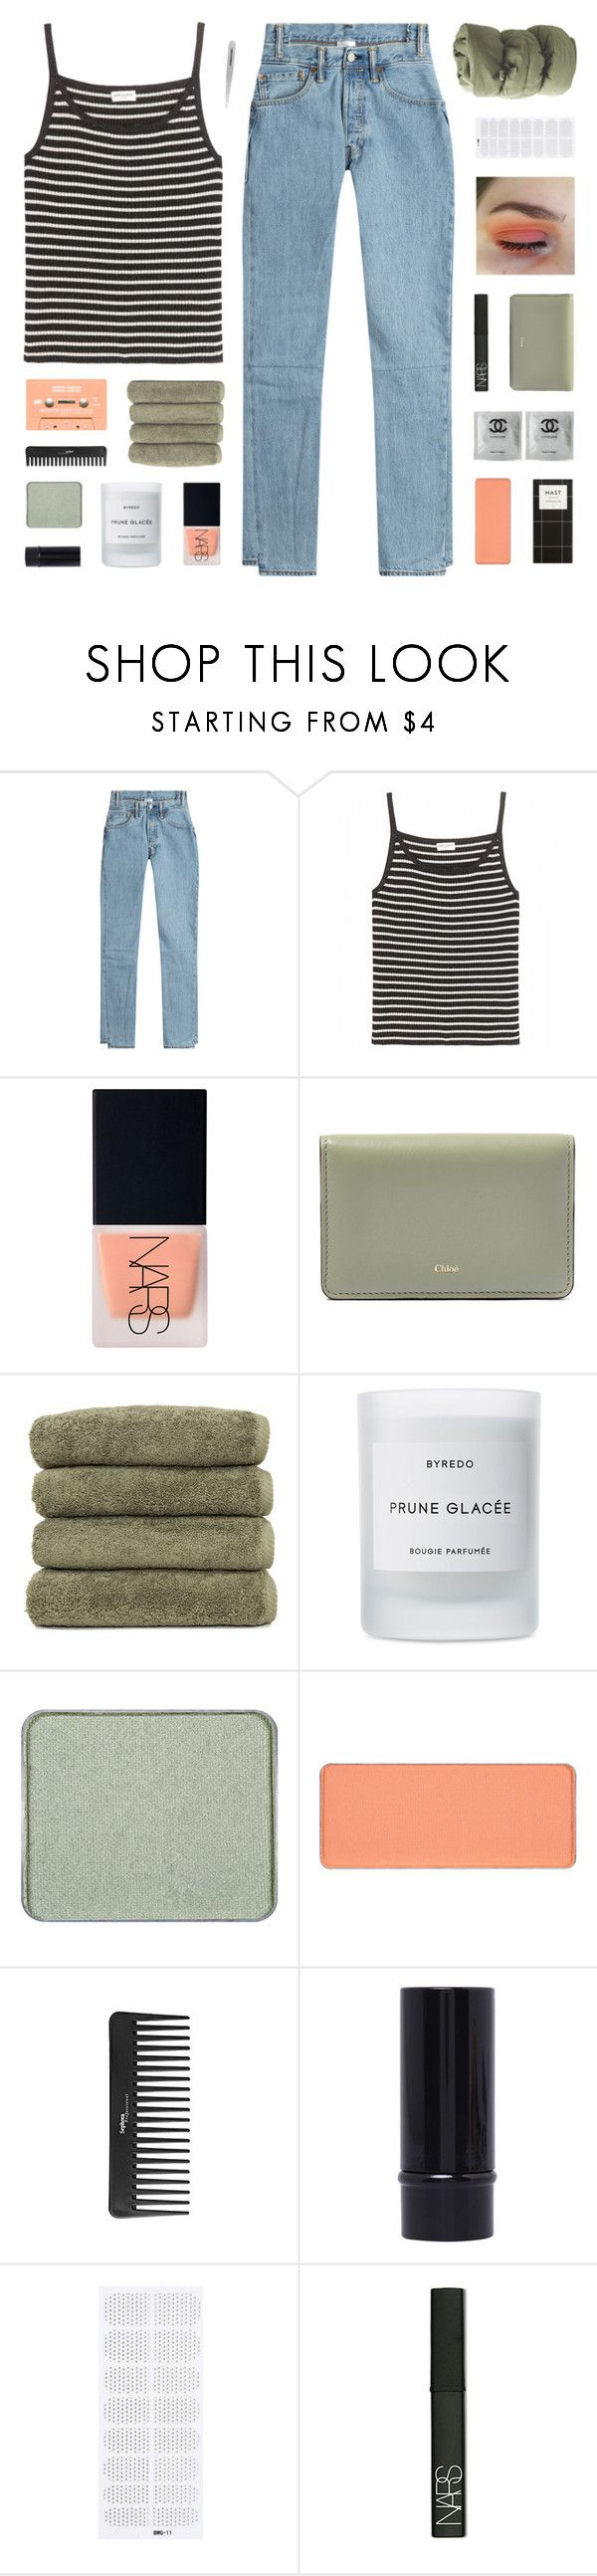 """""""- know we didn't end this so good, but you know we had something so good"""" by p-ureness ❤ liked on Polyvore featuring Vetements, Yves Saint Laurent, NARS Cosmetics, Chloé, Linum Home Textiles, Byredo, shu uemura, Sephora Collection and Tweezerman"""